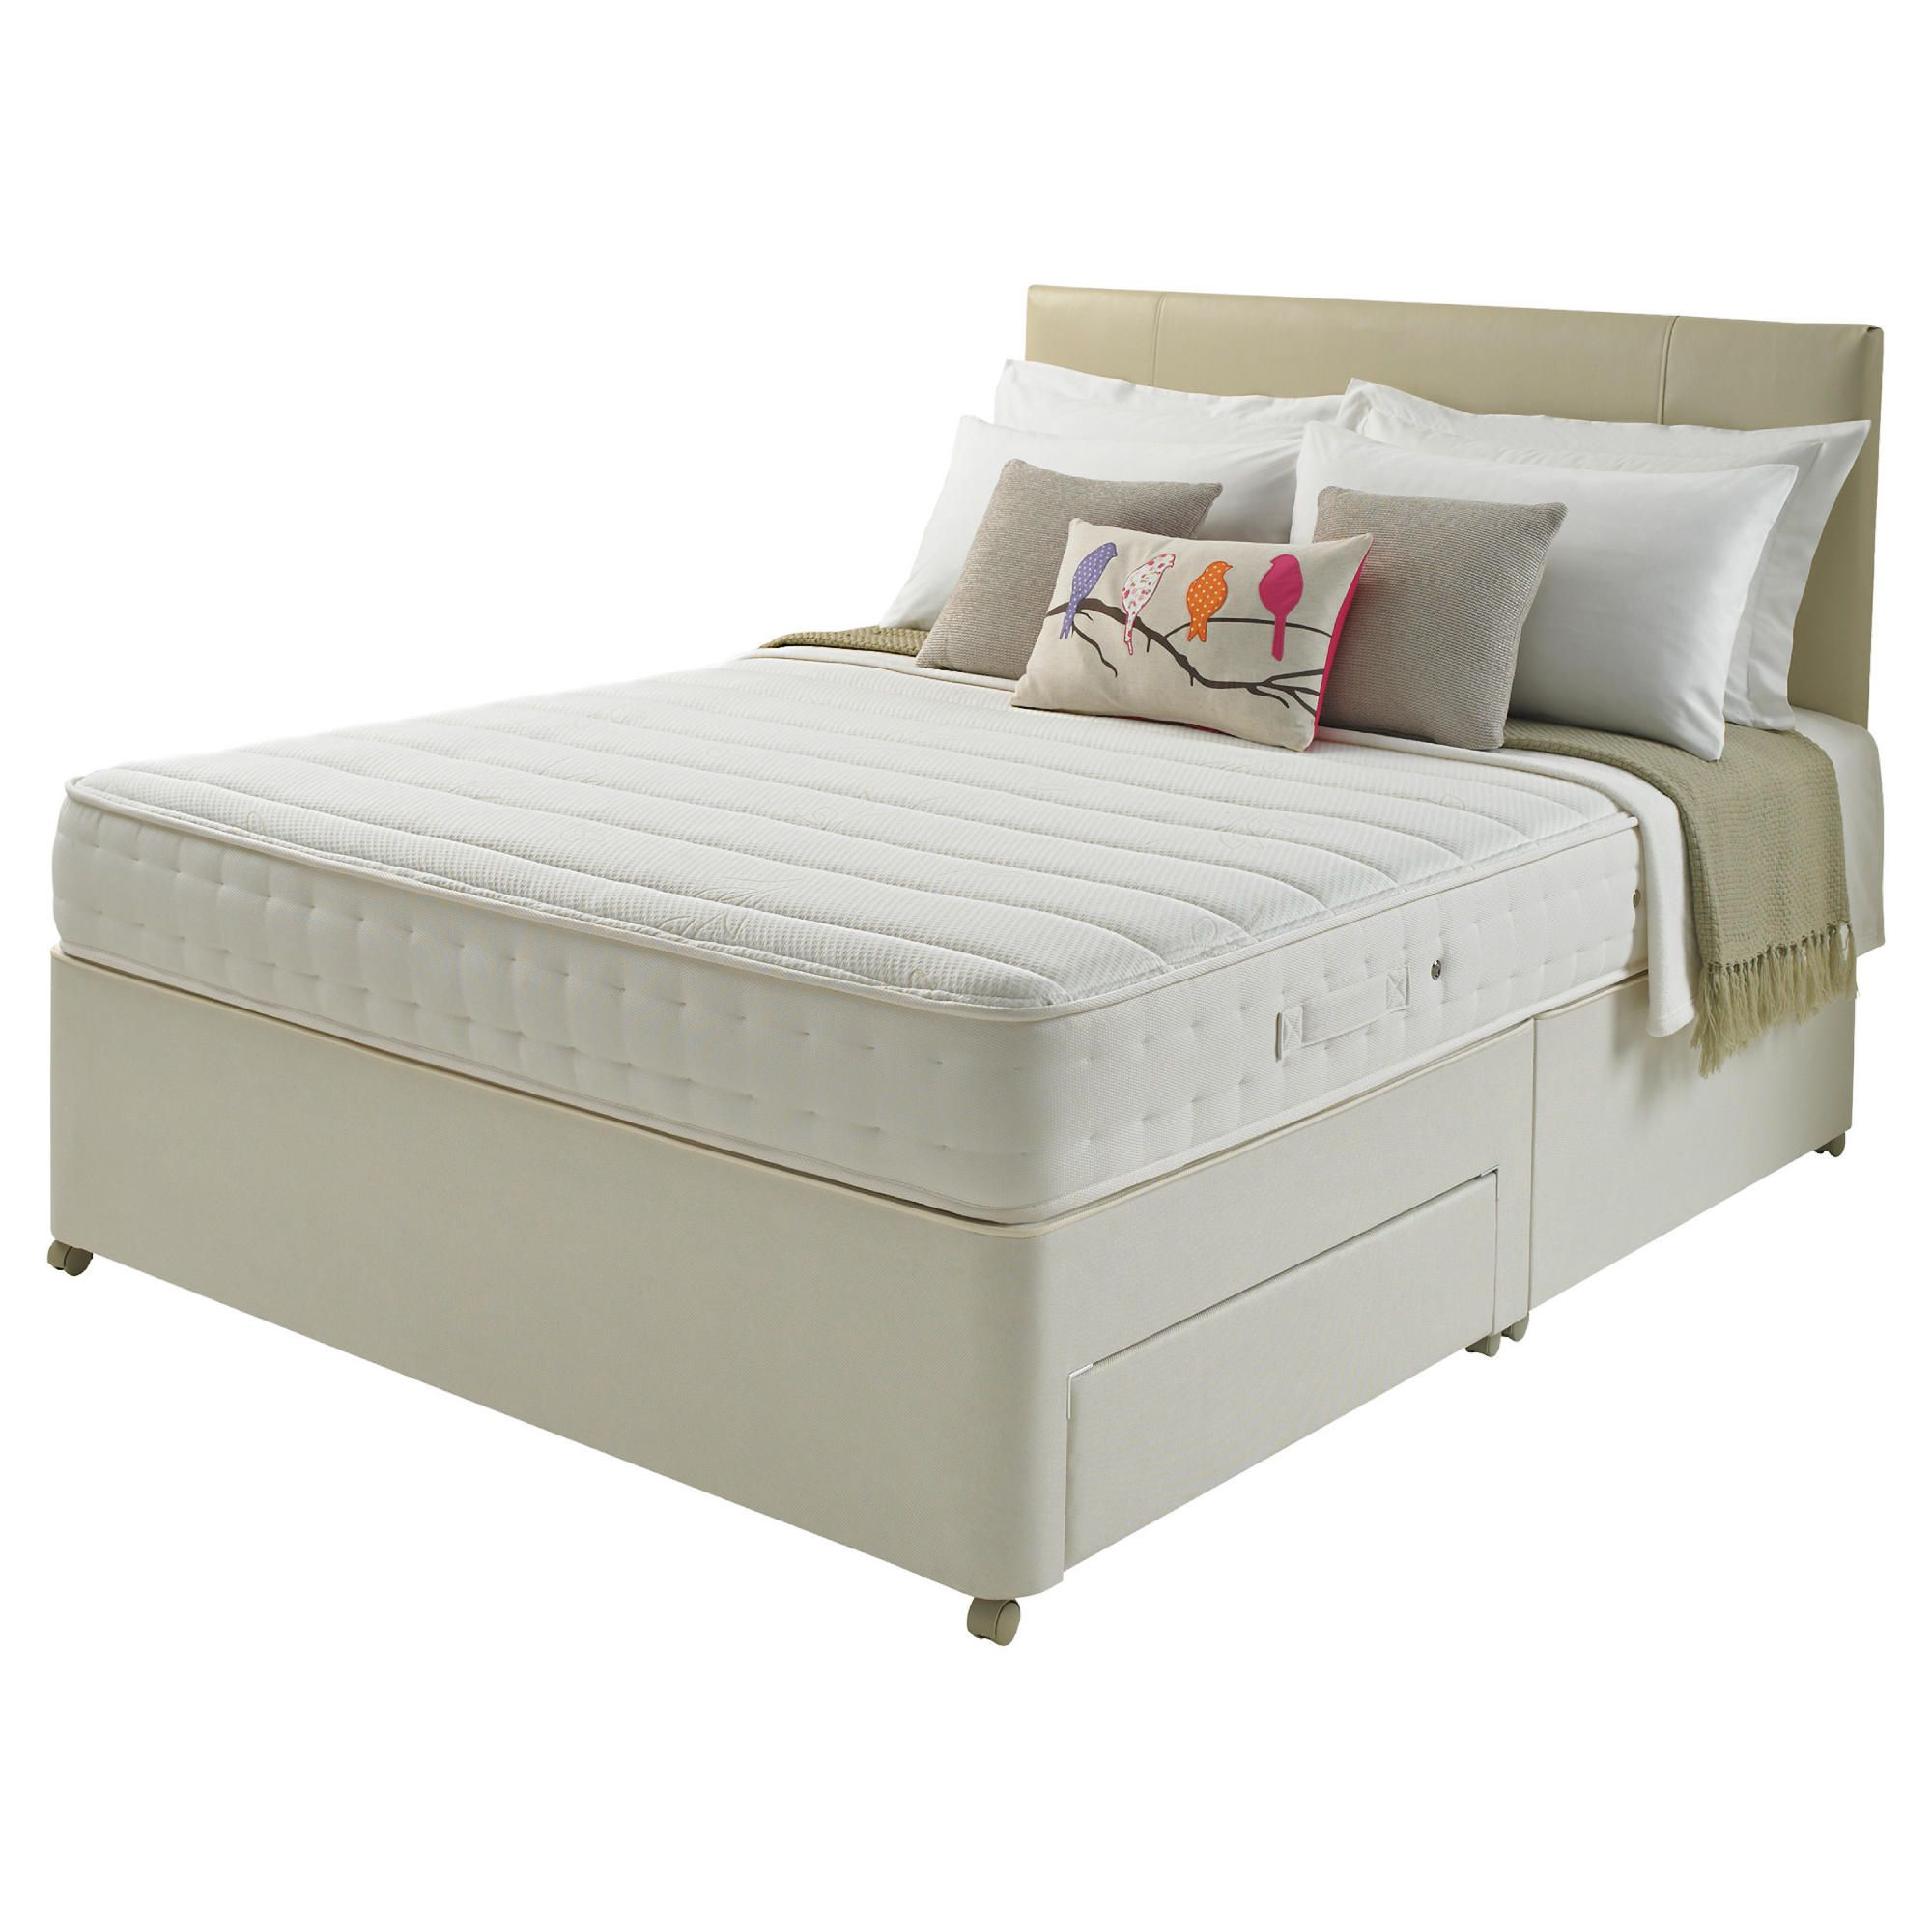 Rest Assured Royal Memory 1000 Double 2 Drawer Divan Bed at Tesco Direct